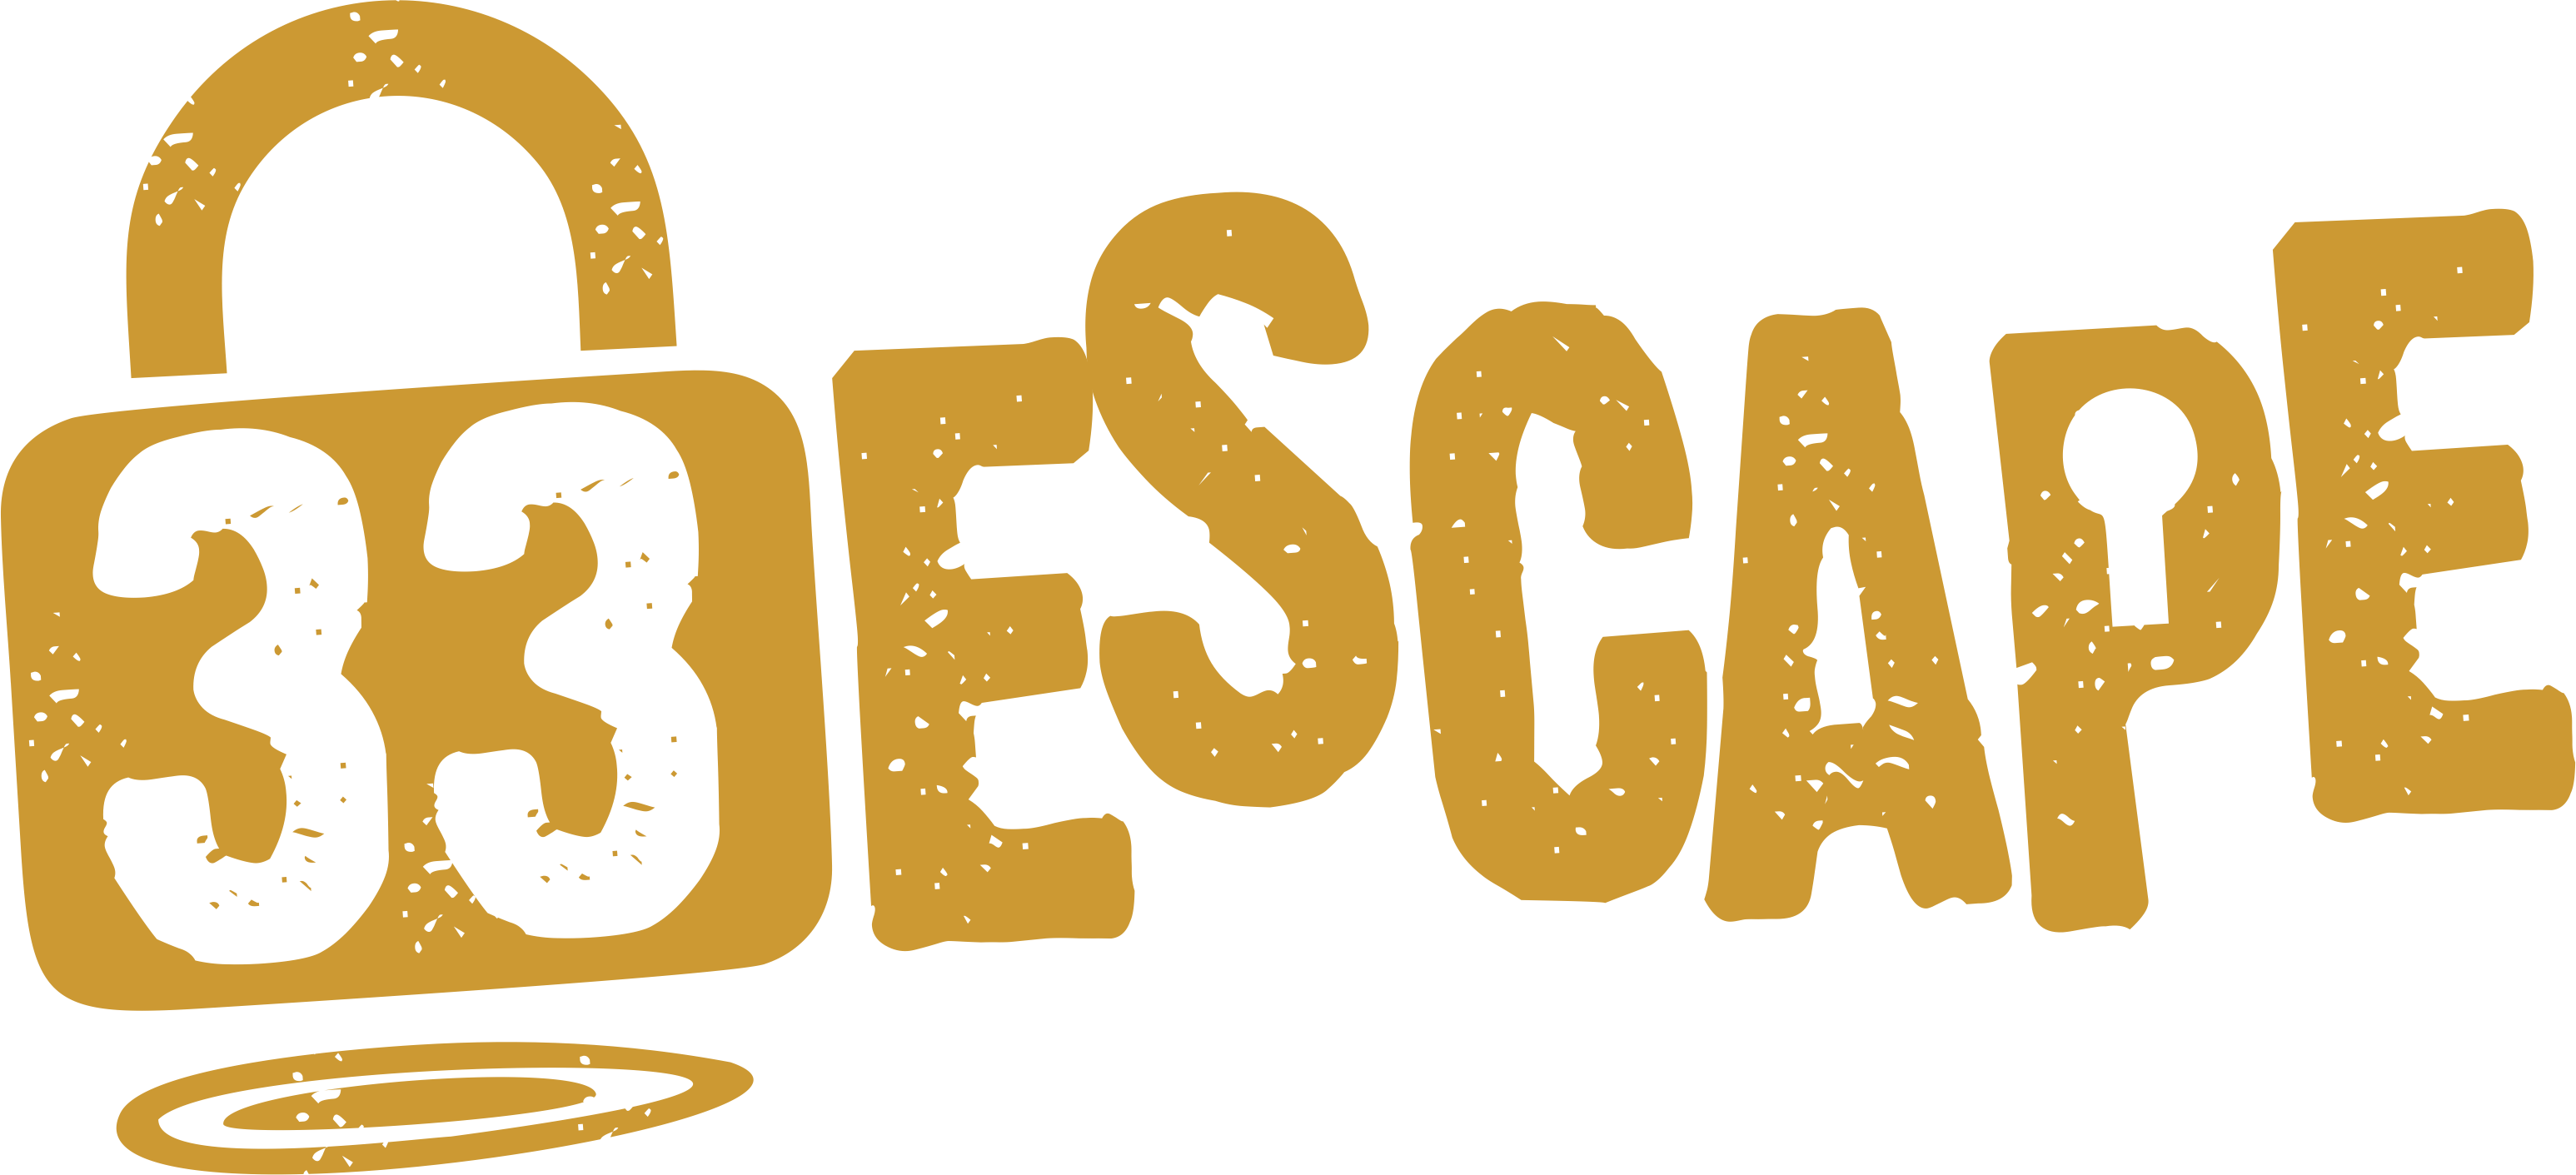 33 Escape | Escape room Valladolid